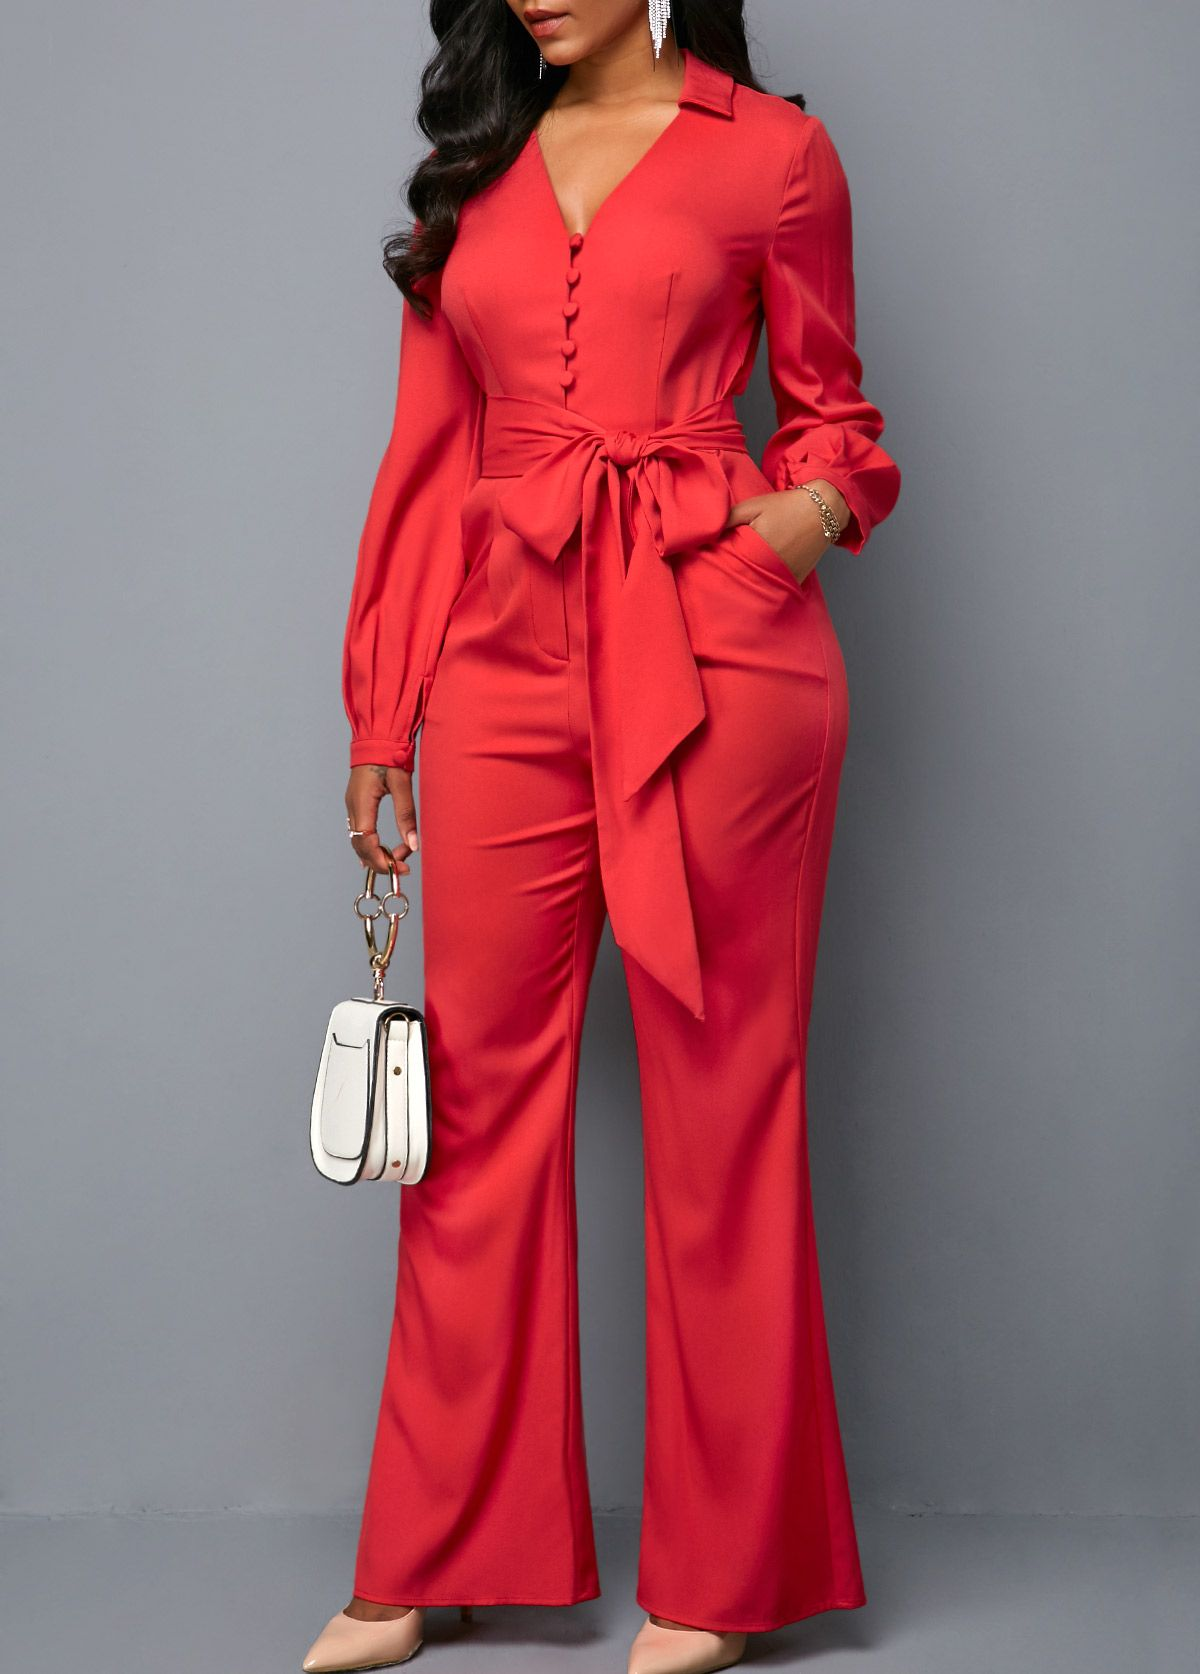 044887dbbdf Long Sleeve V Neck Button Front Belted Jumpsuit